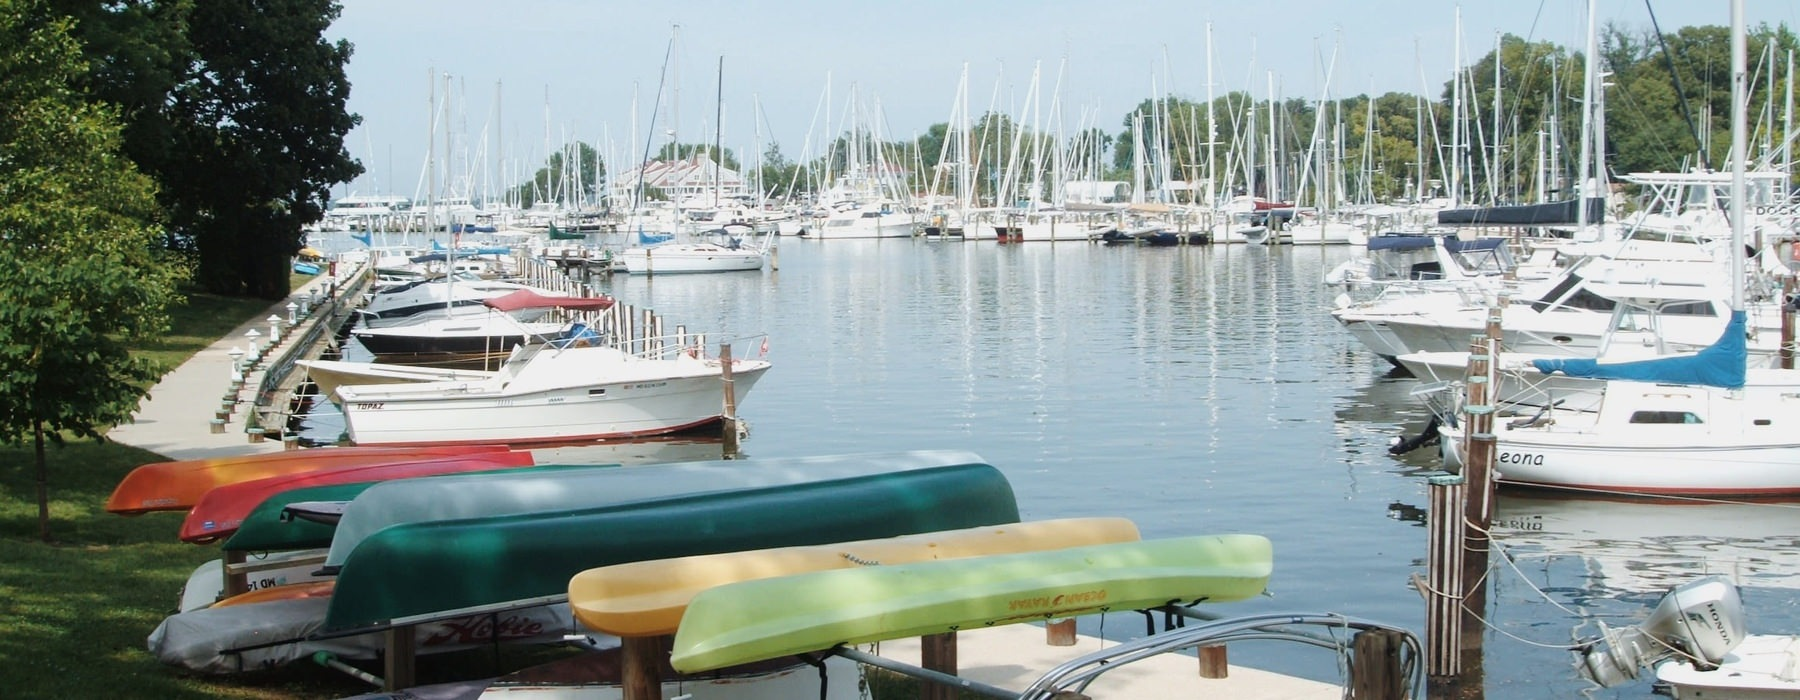 Marina with kayaks and sailing boats.